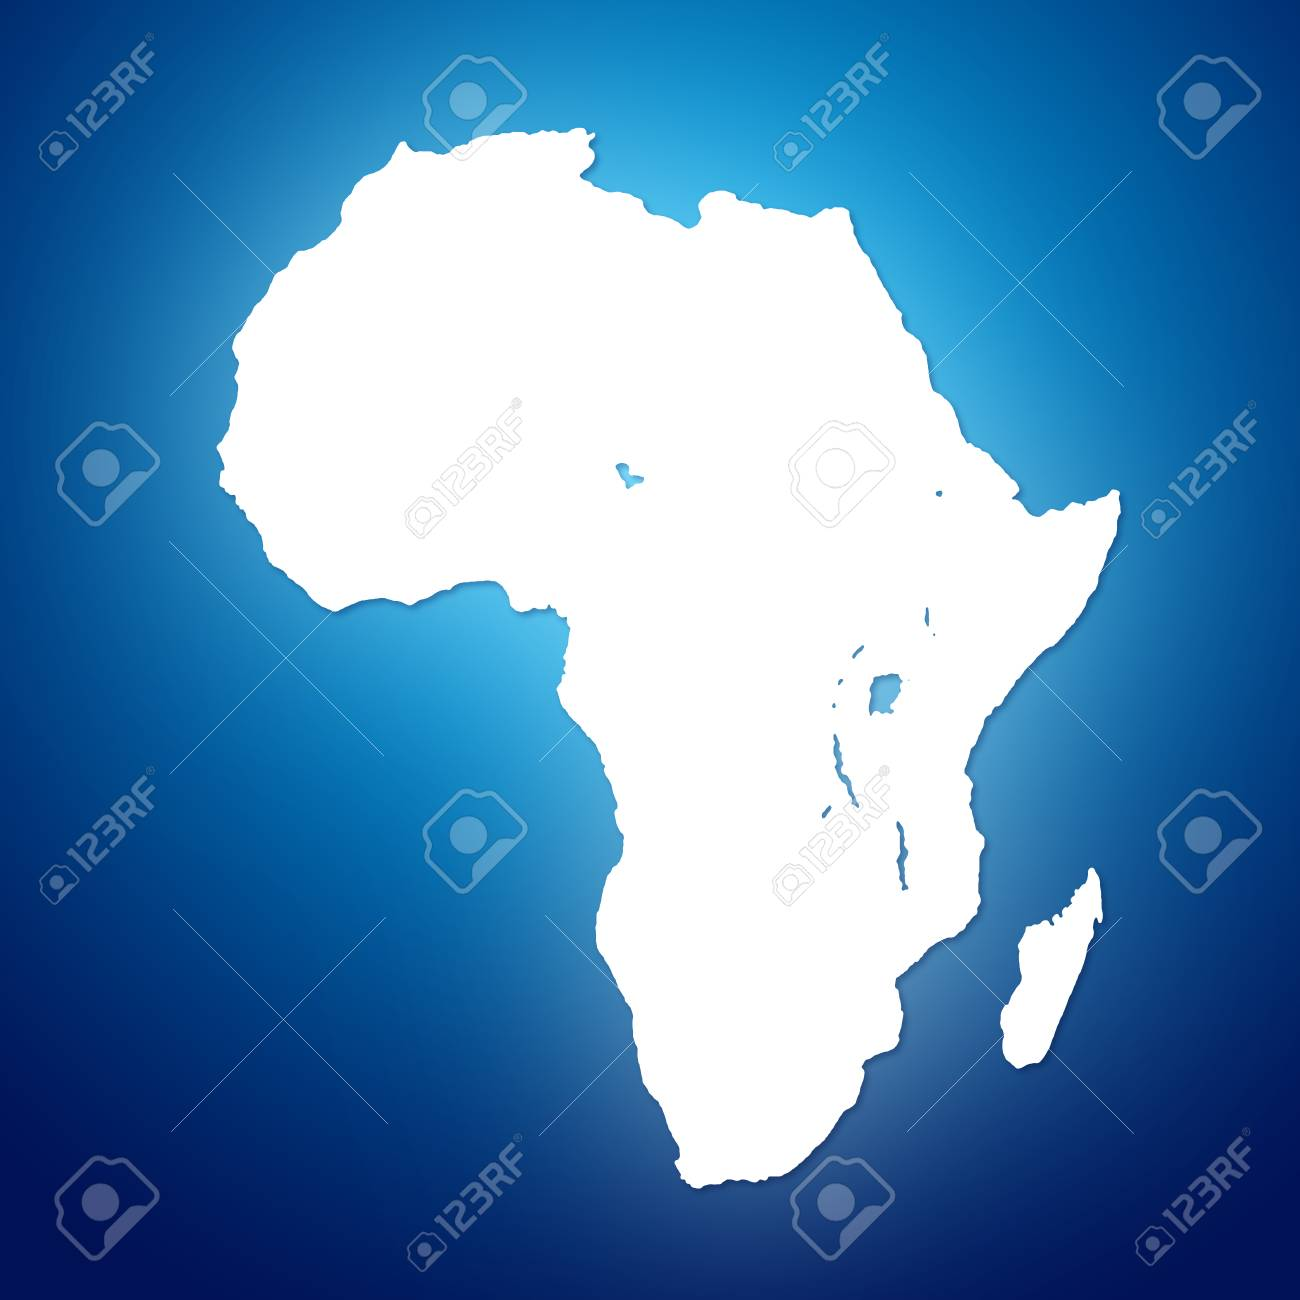 Image Of Modern Africa Map Illustration Stock Photo, Picture And ...